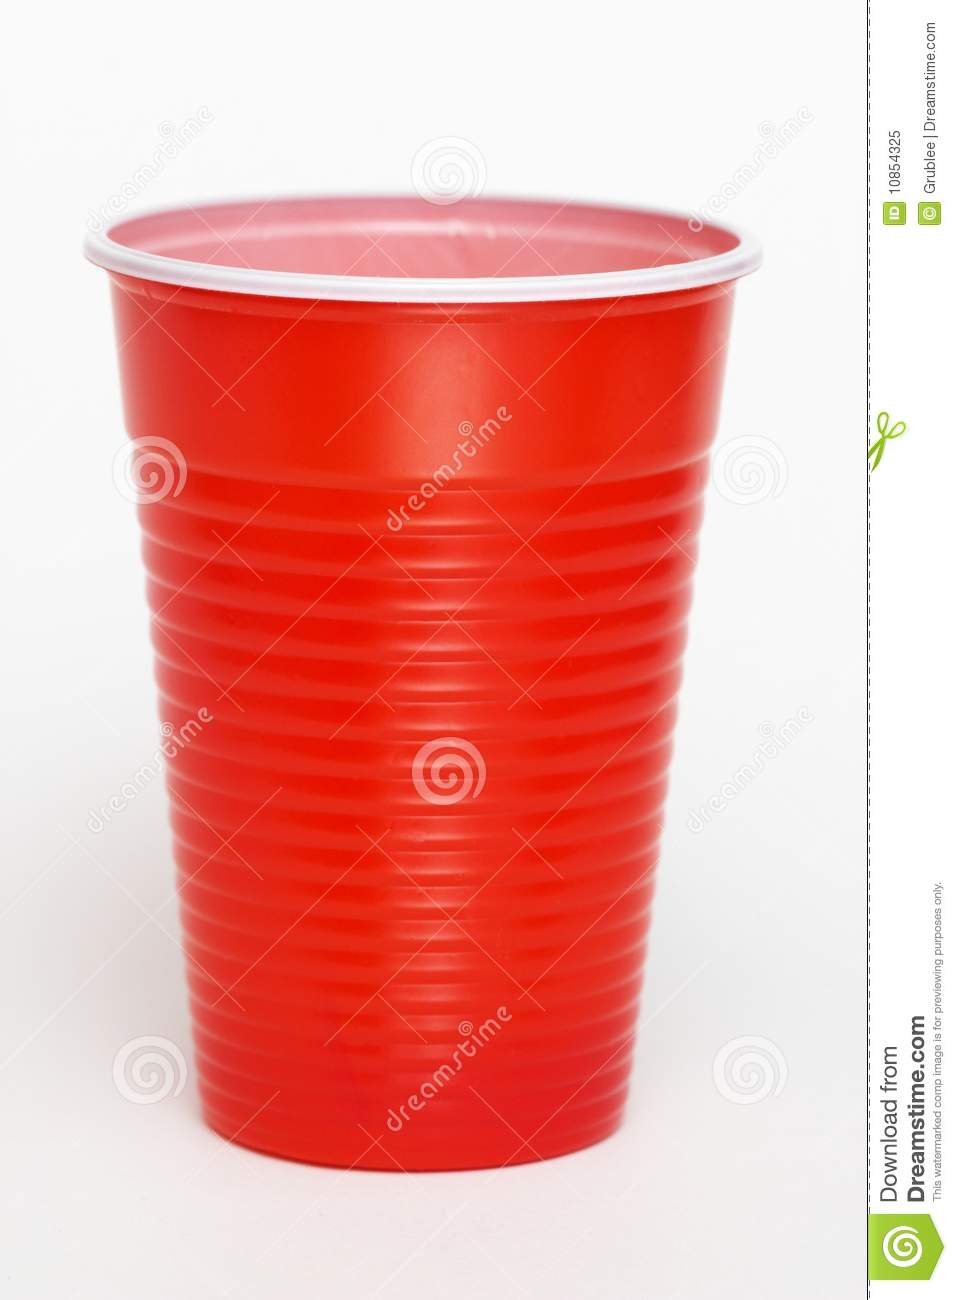 Plastic Cup Clipart Red Plastic Cup Isolated Over